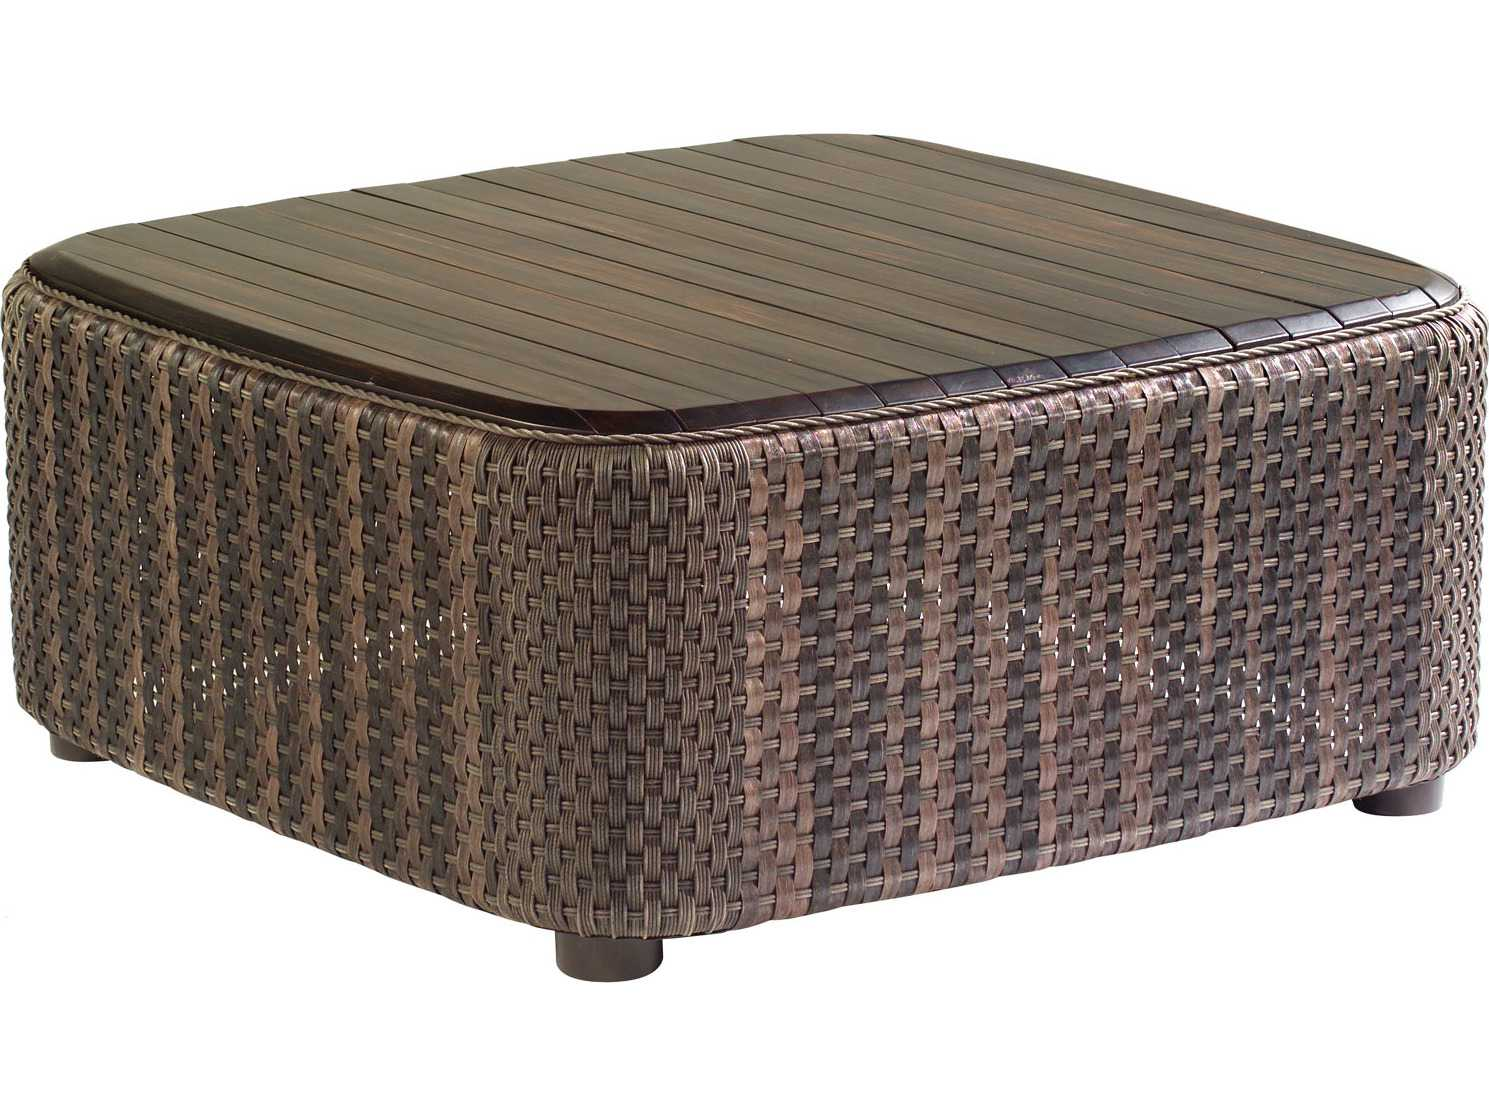 Whitecraft Aruba Wicker 36 Square Coffee Table S530211